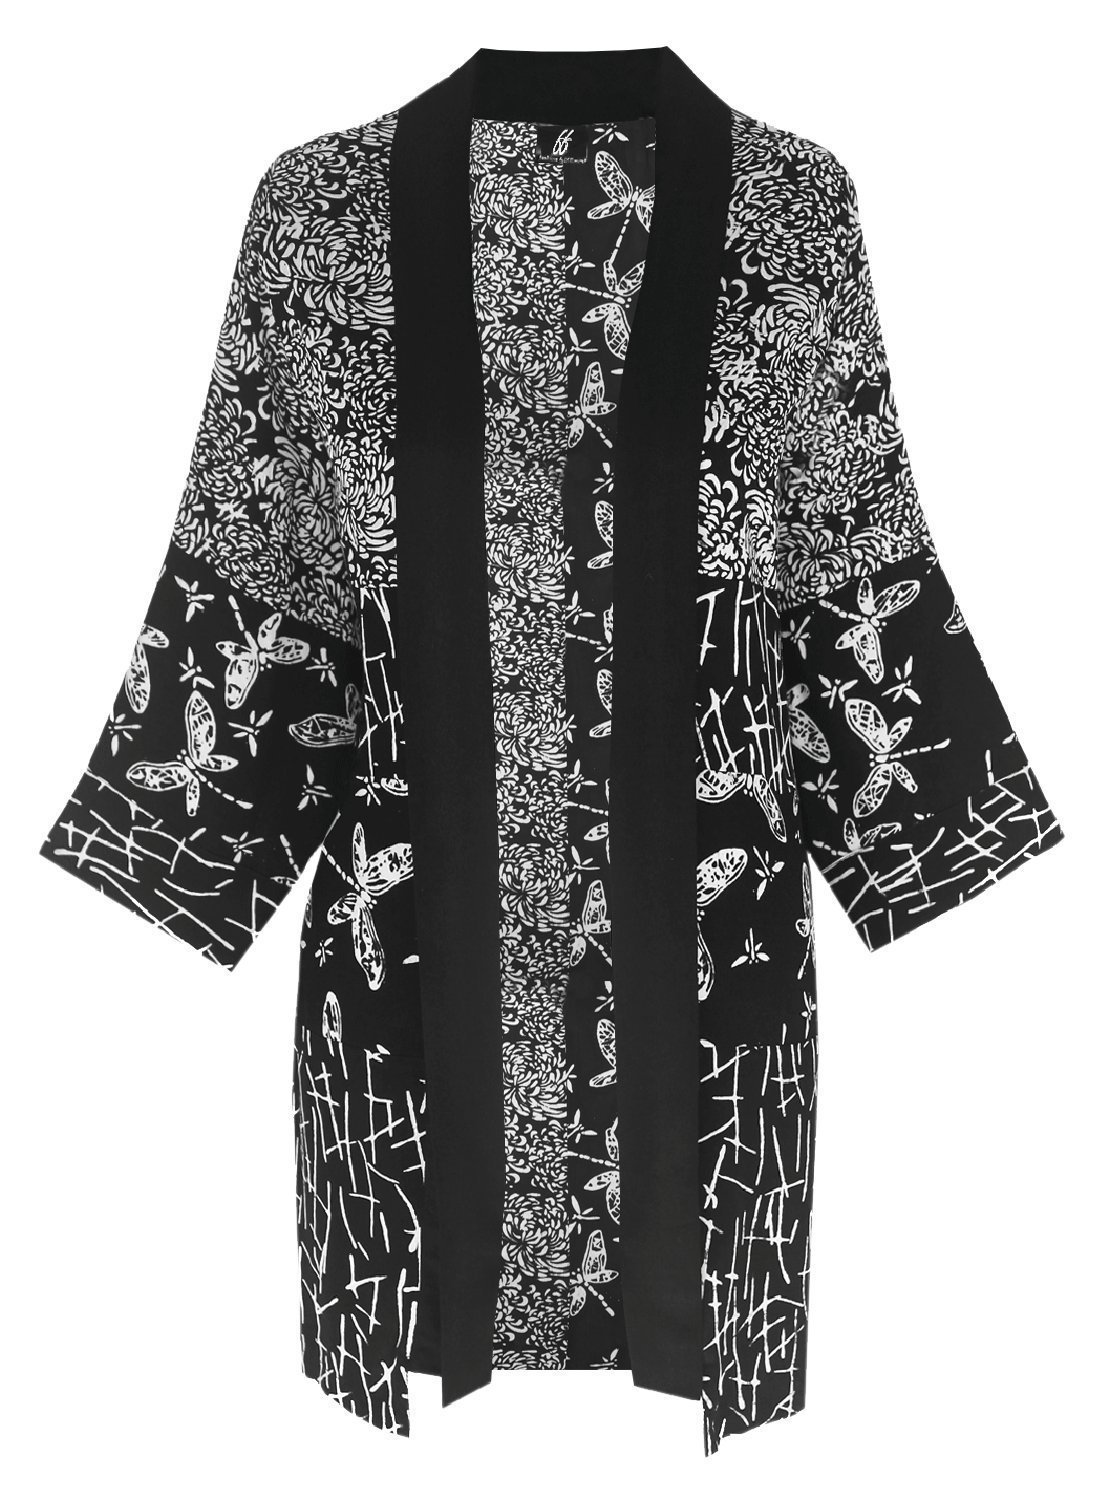 3x 4x Kimono Plus Size Women's Cardigan, Plus Size Clothing for Larger Size, Custom Order 3x 4x Plus Size Kimono Duster Jacket, Mix and Match with Basics, Dressy for Office and Special Occasions